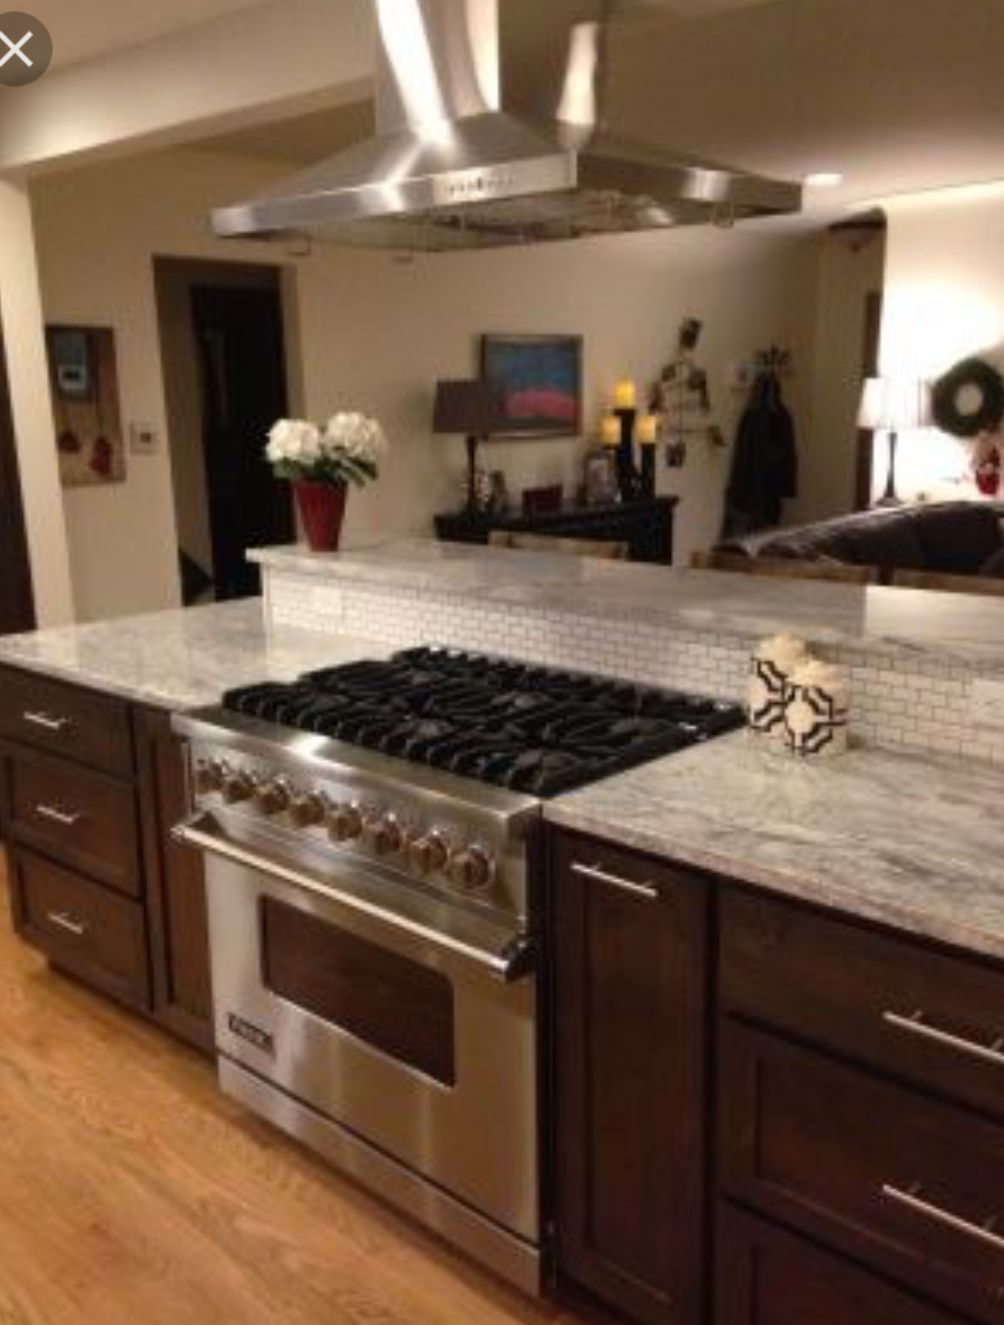 We like the height of the backsplash behind the stove ...